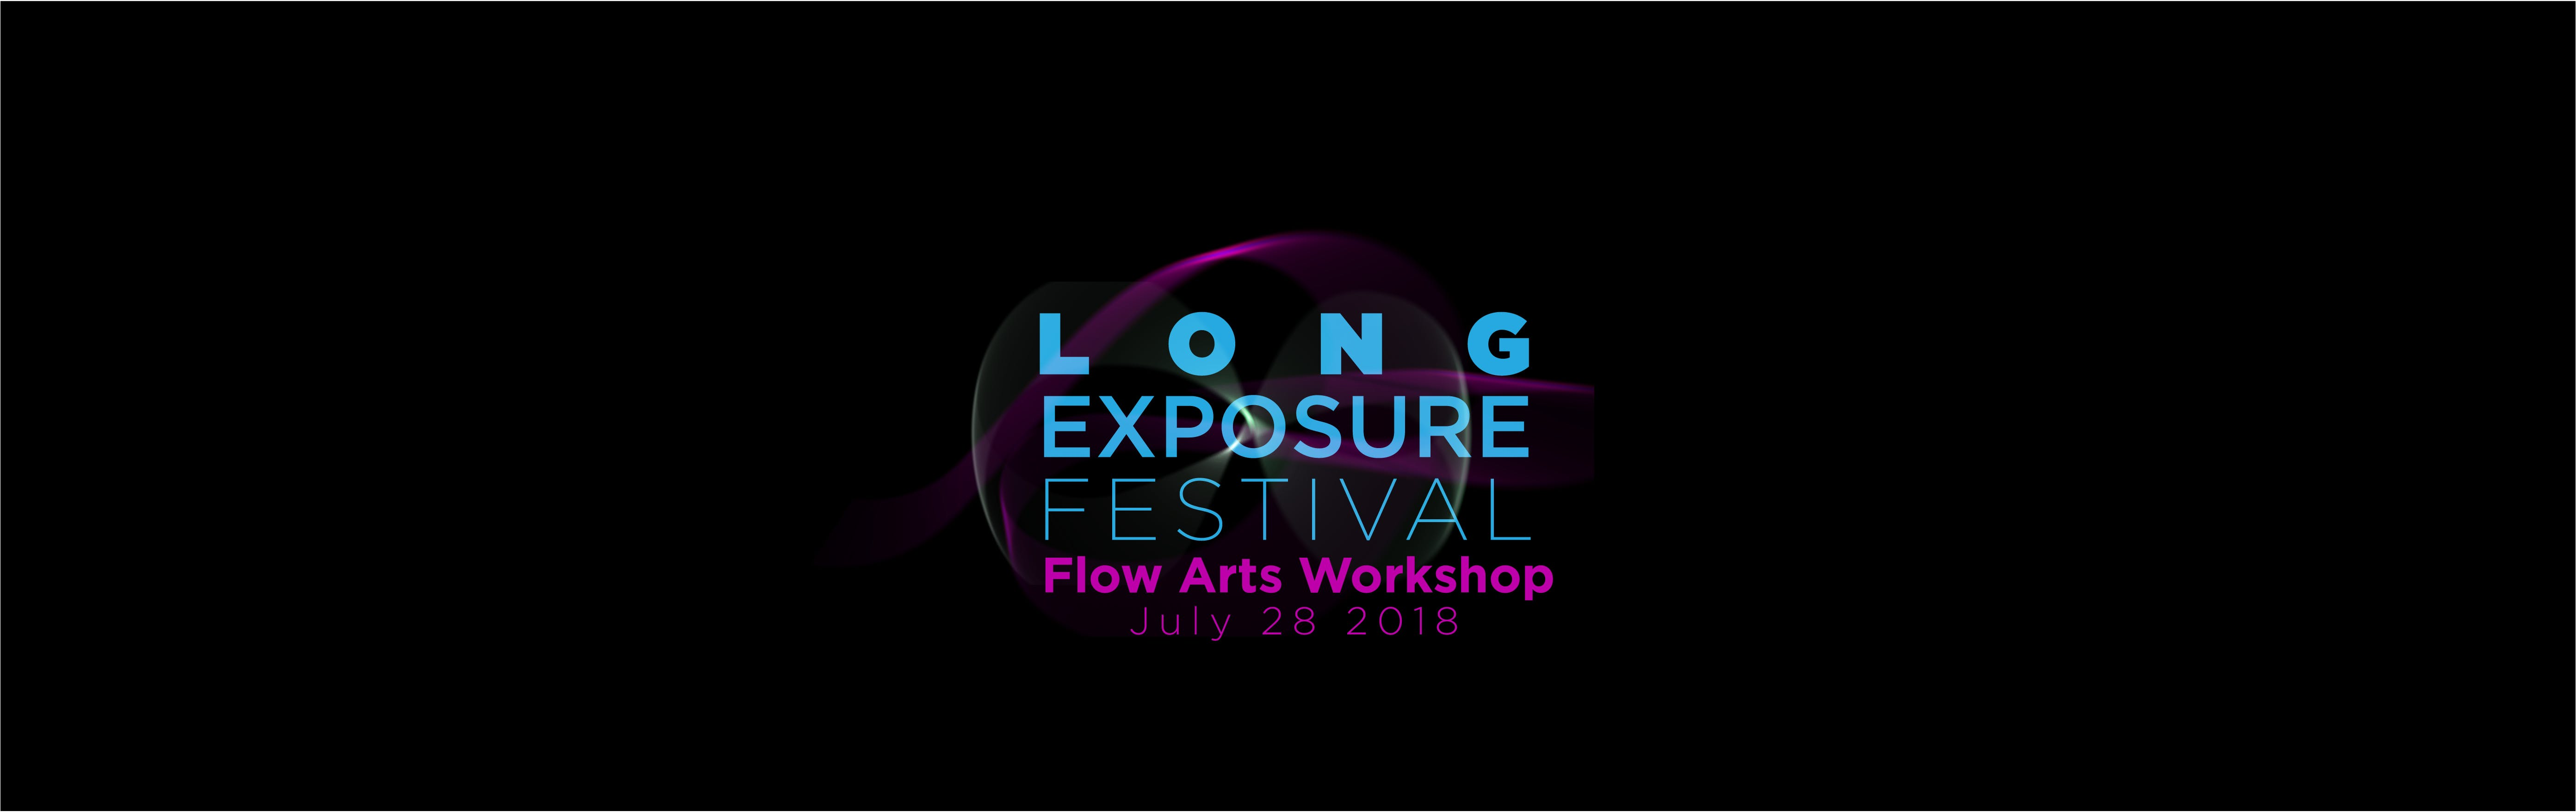 Flow Arts Workshop with the Long Exposure Fes